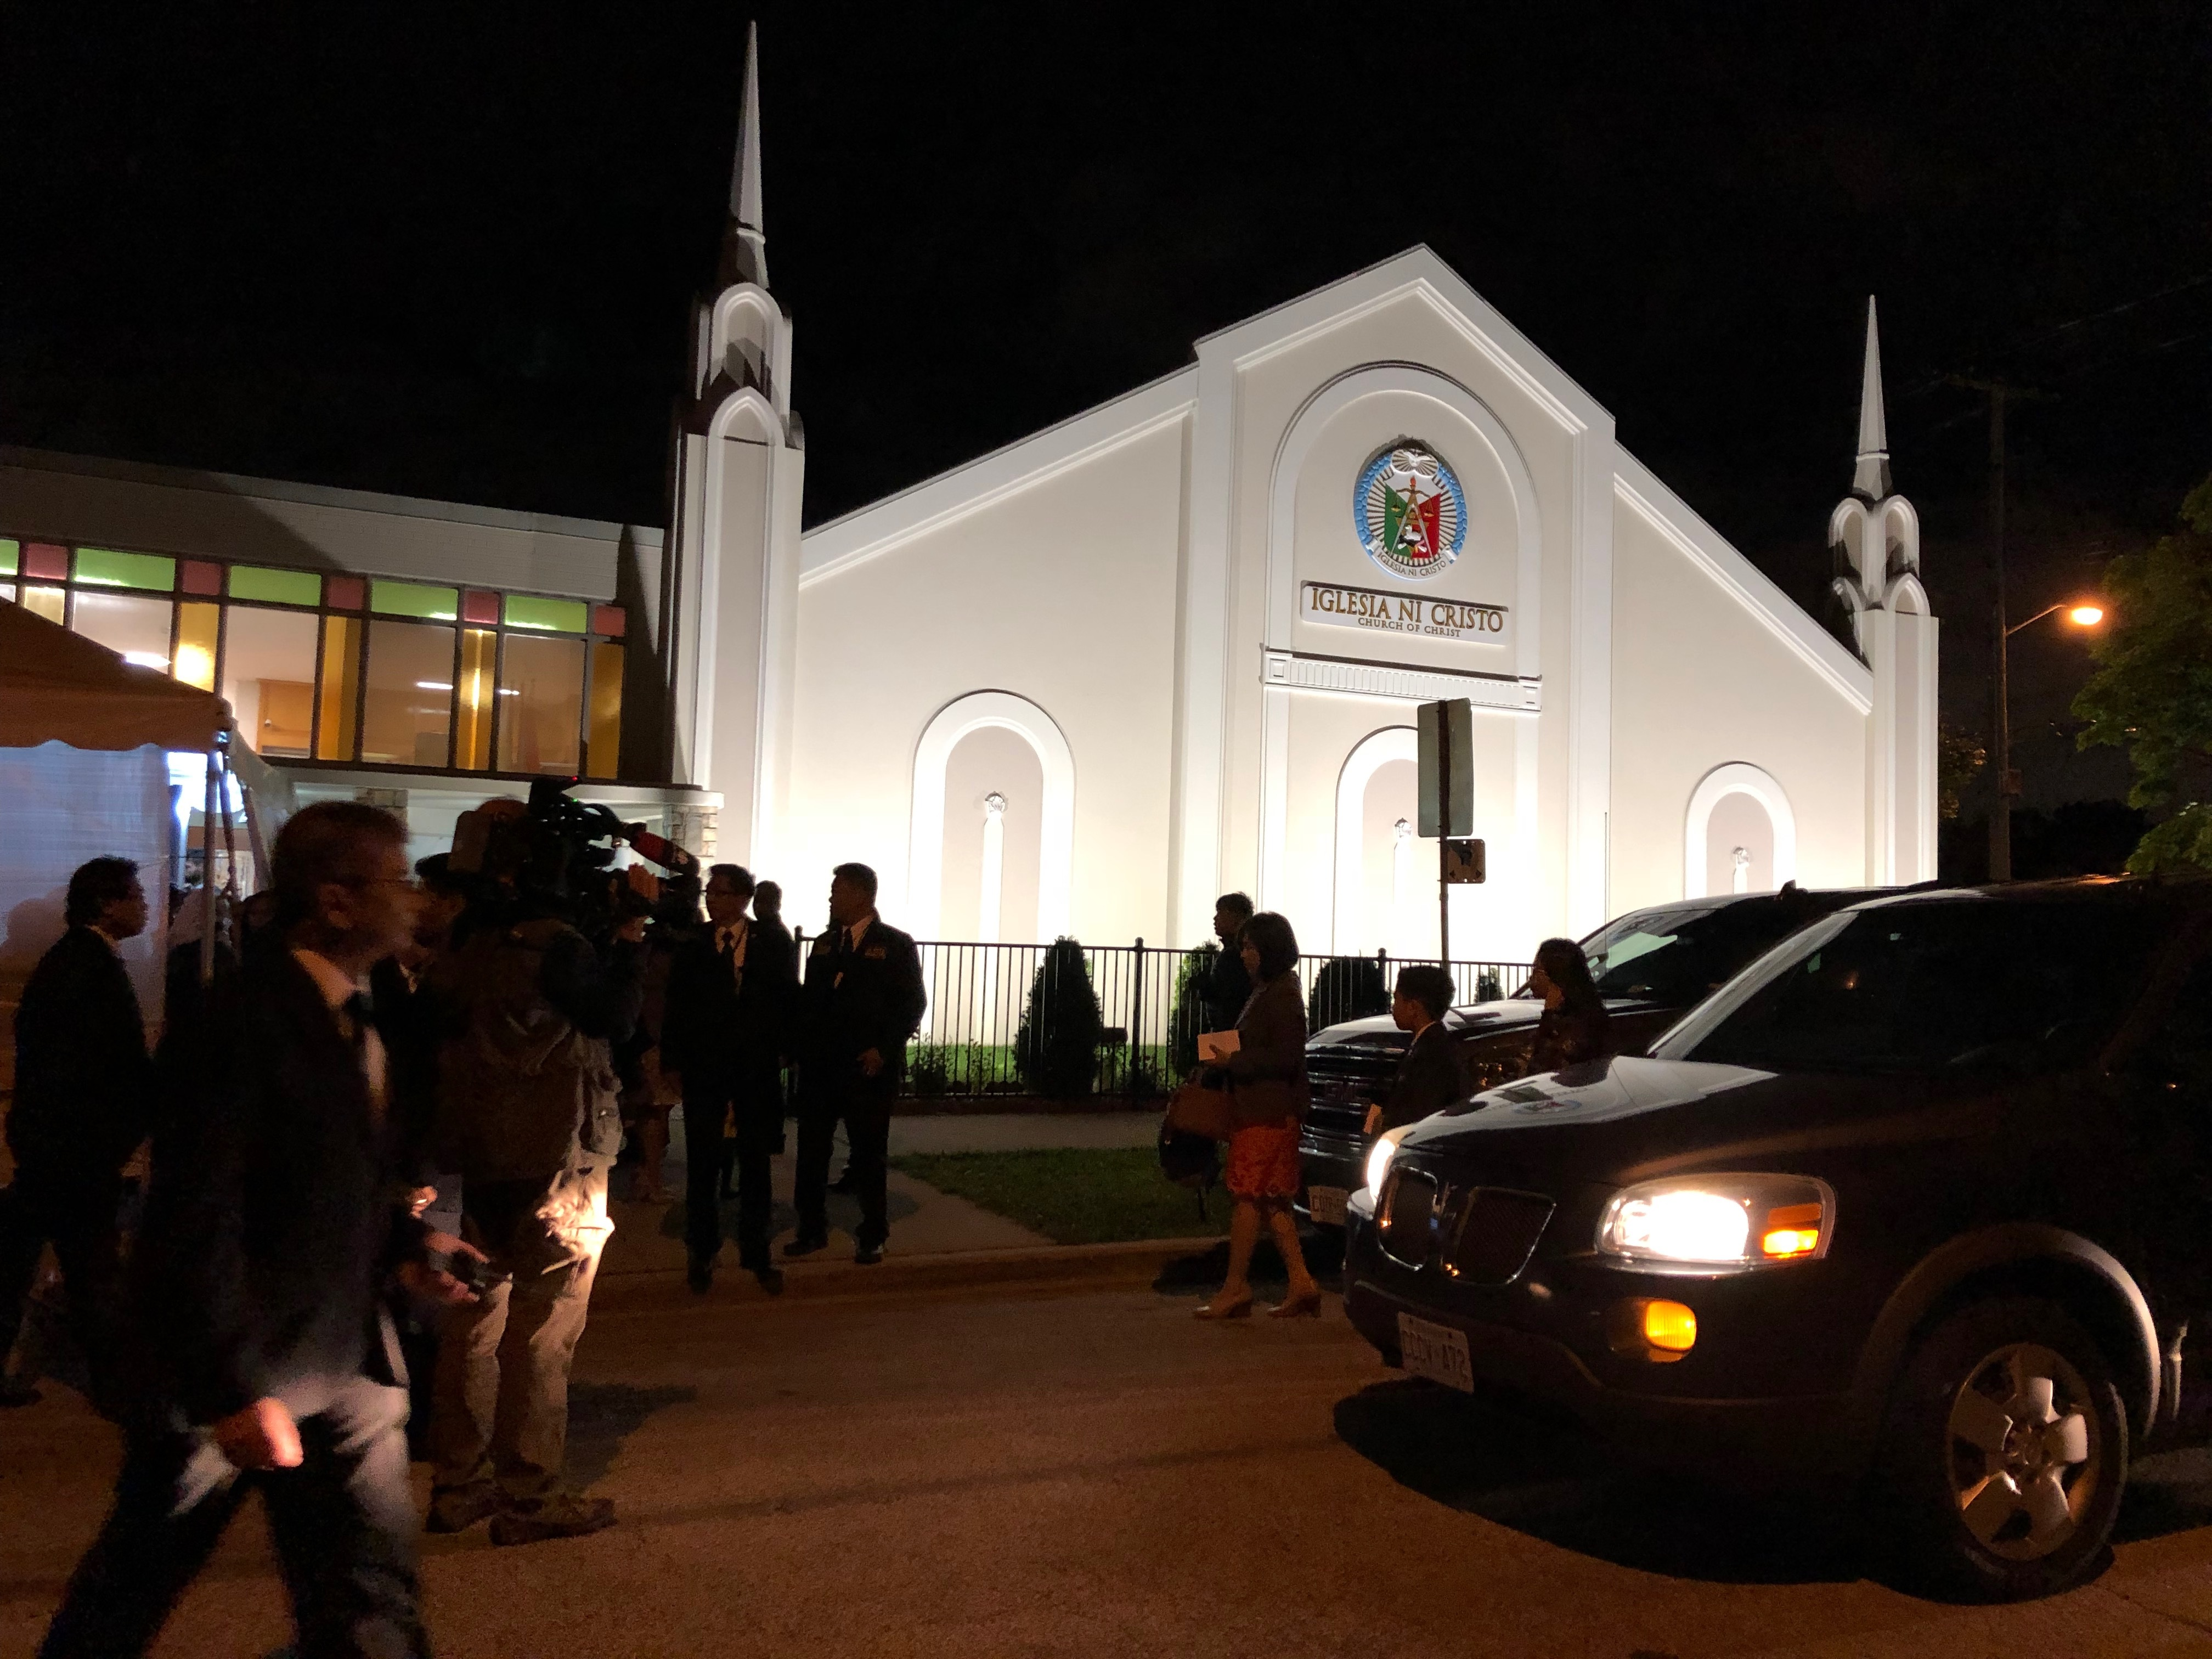 Worshippers come to hear Manalo speak at an INC church in a Toronto suburb in September. (CBC)